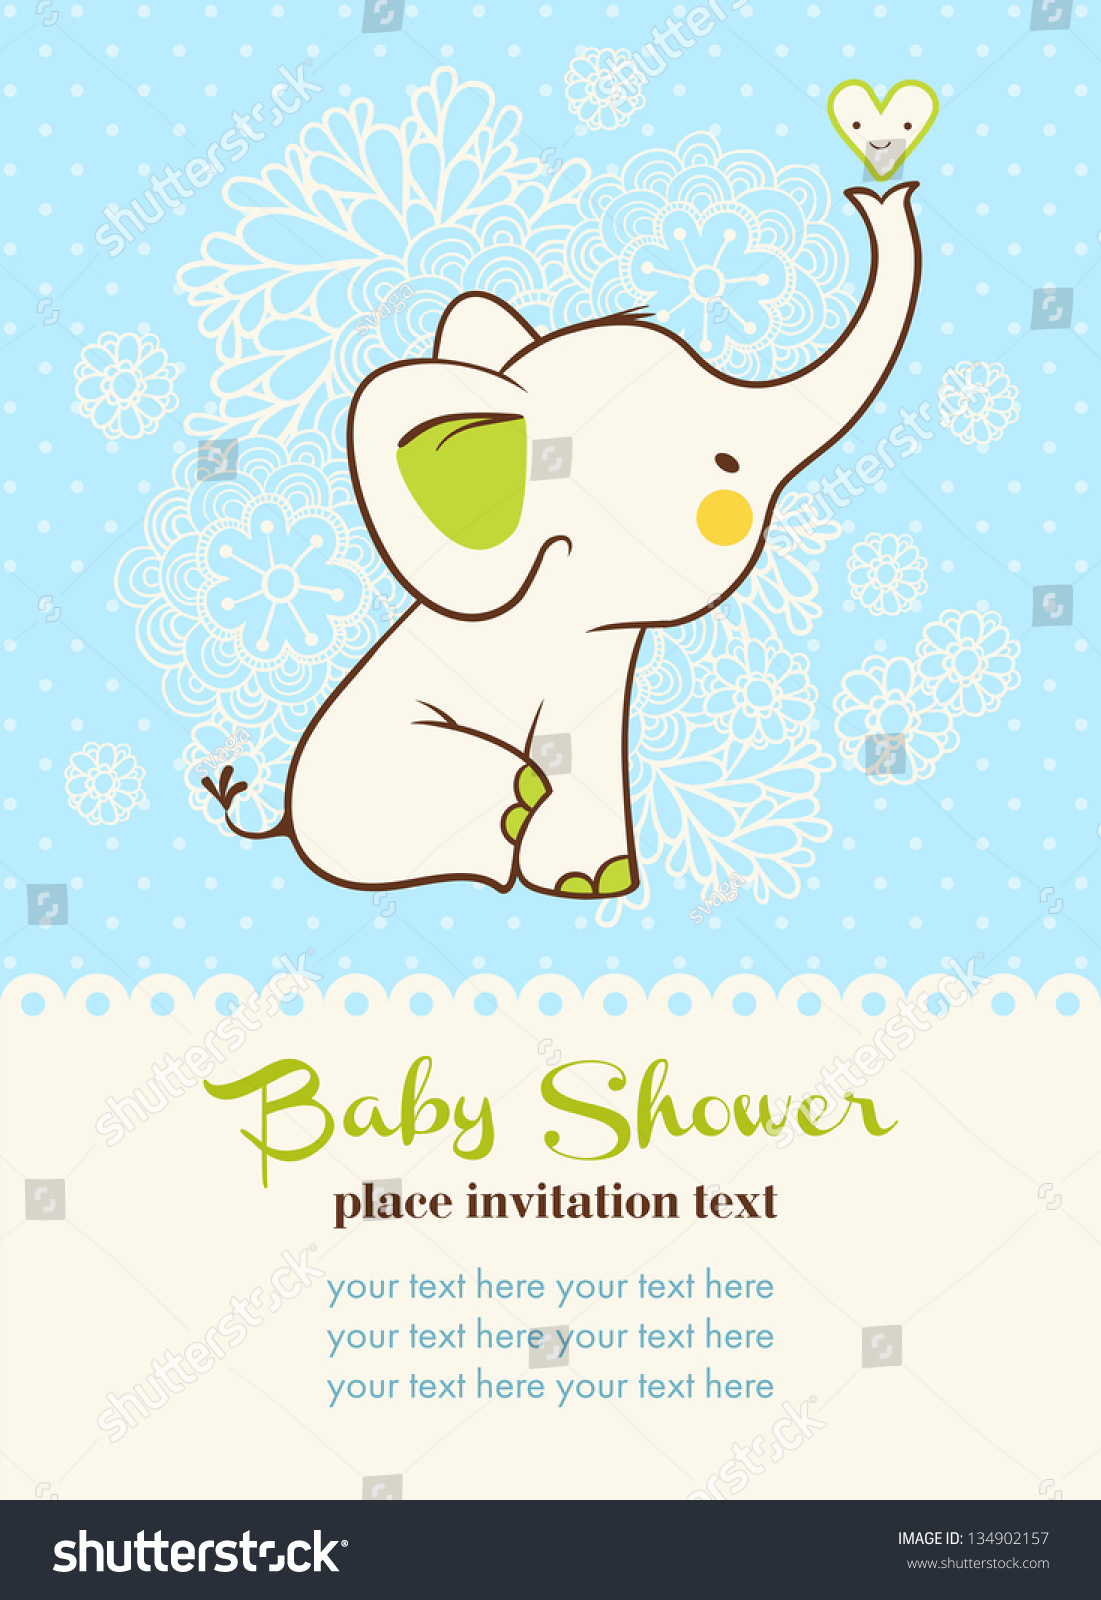 baby shower invitation card stock vector   shutterstock, Baby shower invitations